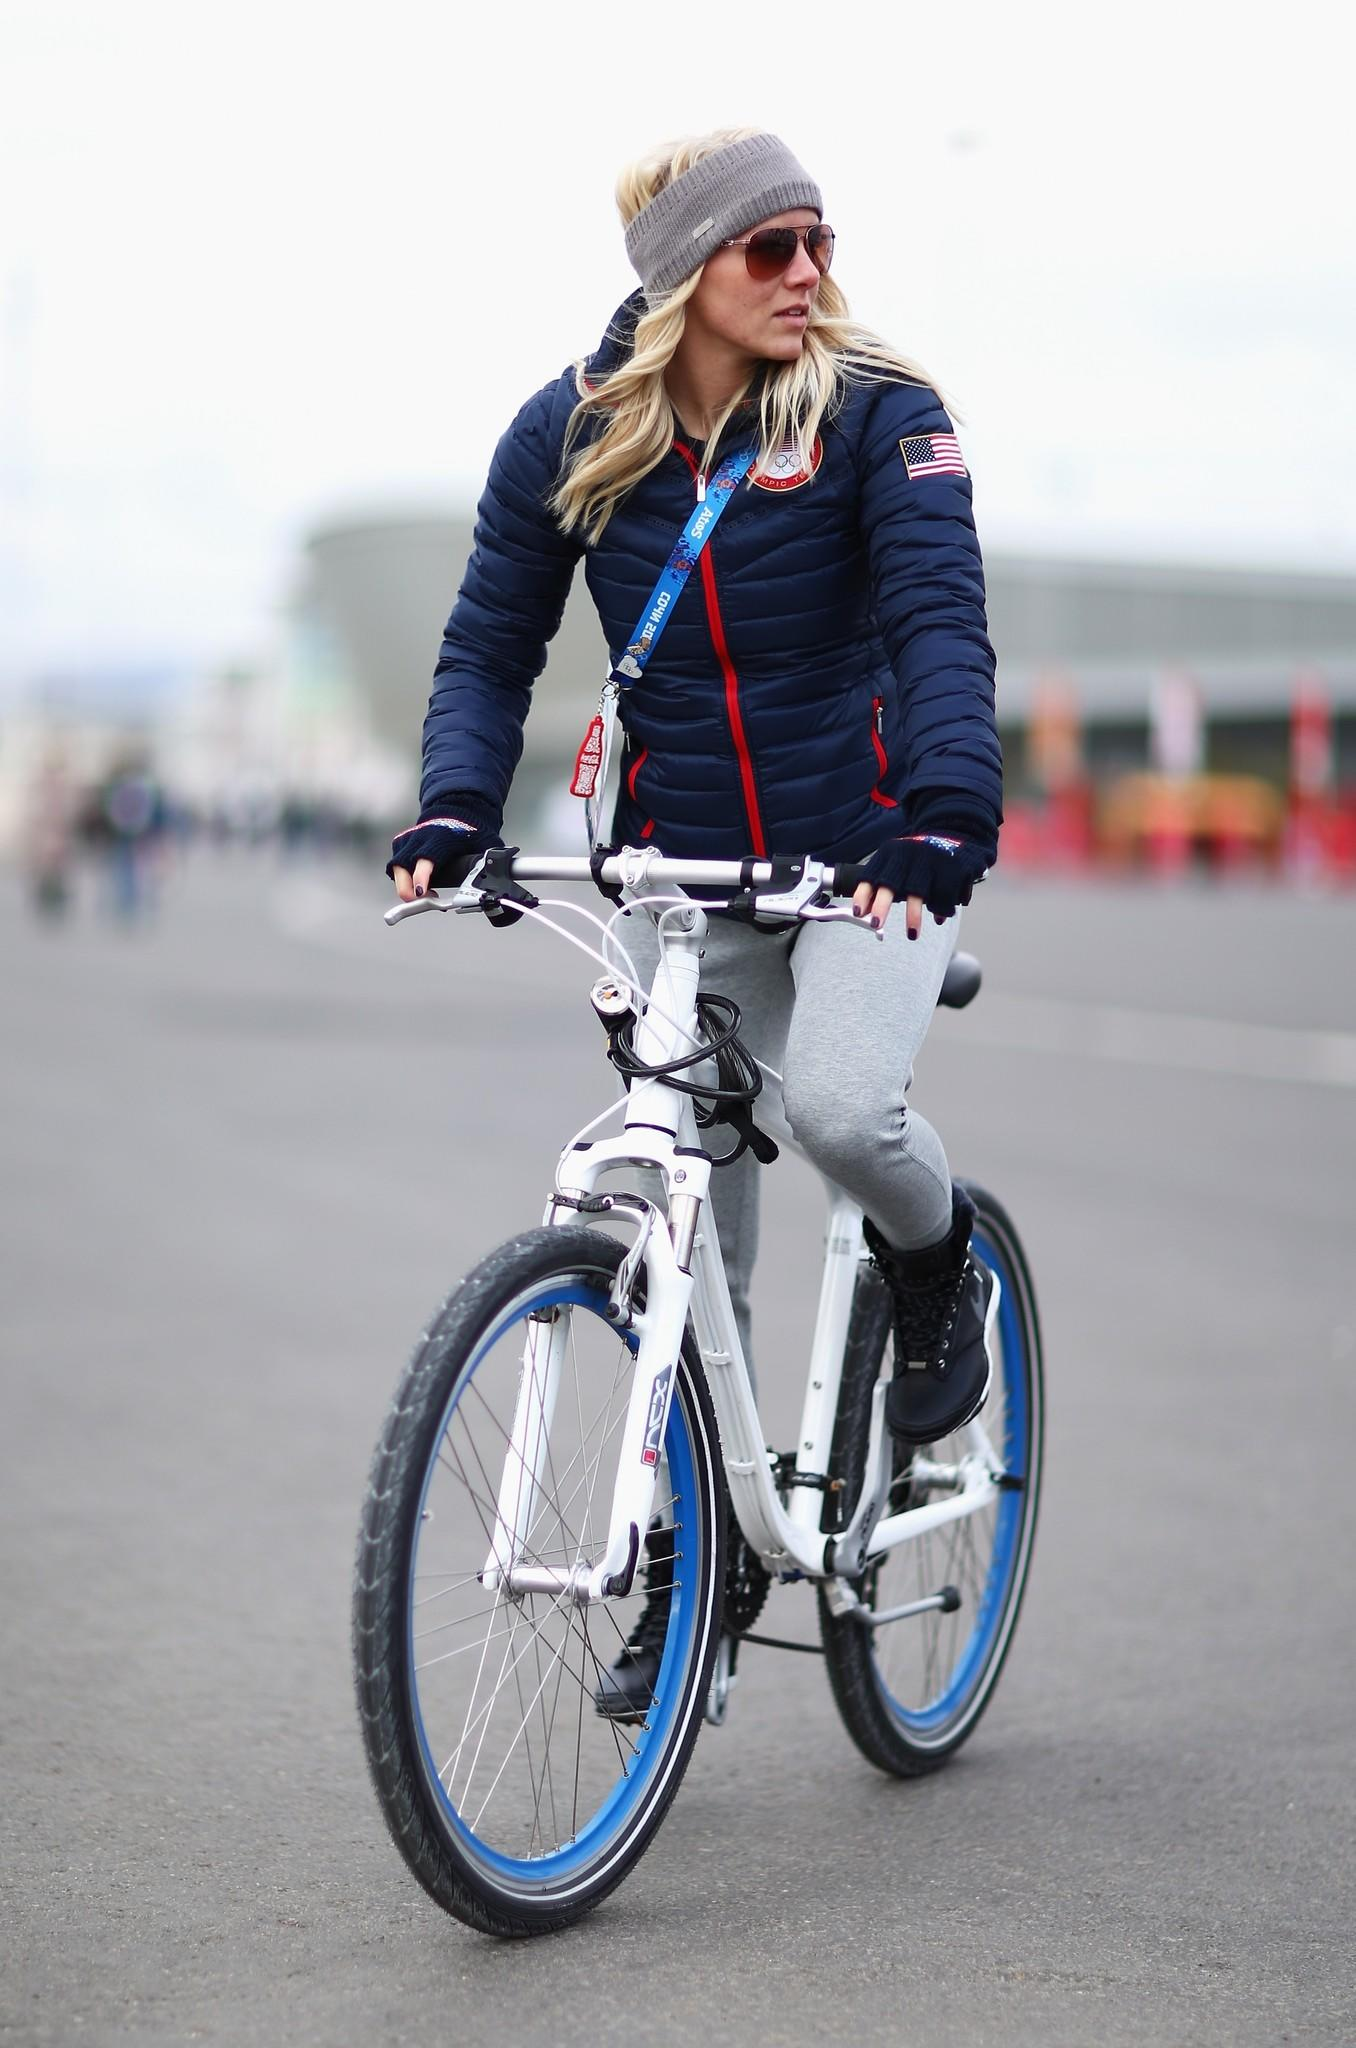 Emily Scott rides a bike at the Olympic Park in Sochi. (Clive Mason/Getty Photo)